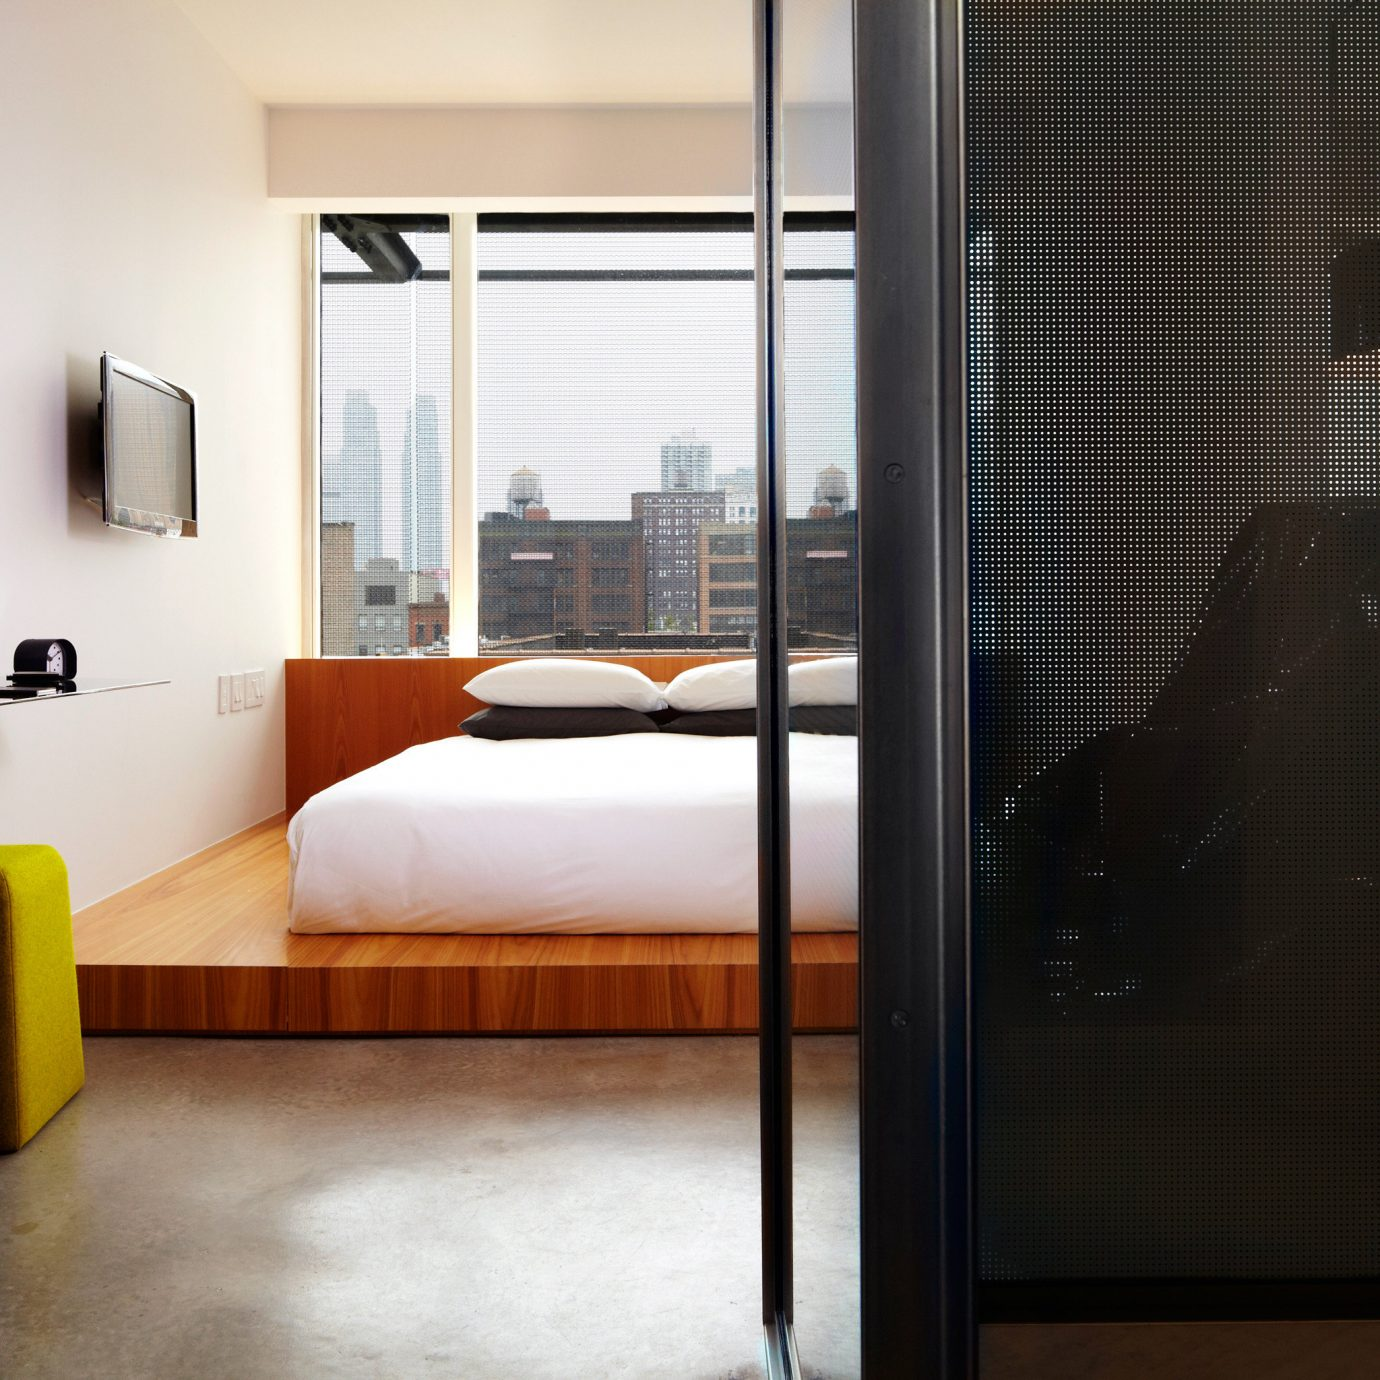 Bedroom City Modern Scenic views Suite property house Architecture home condominium living room flooring door loft